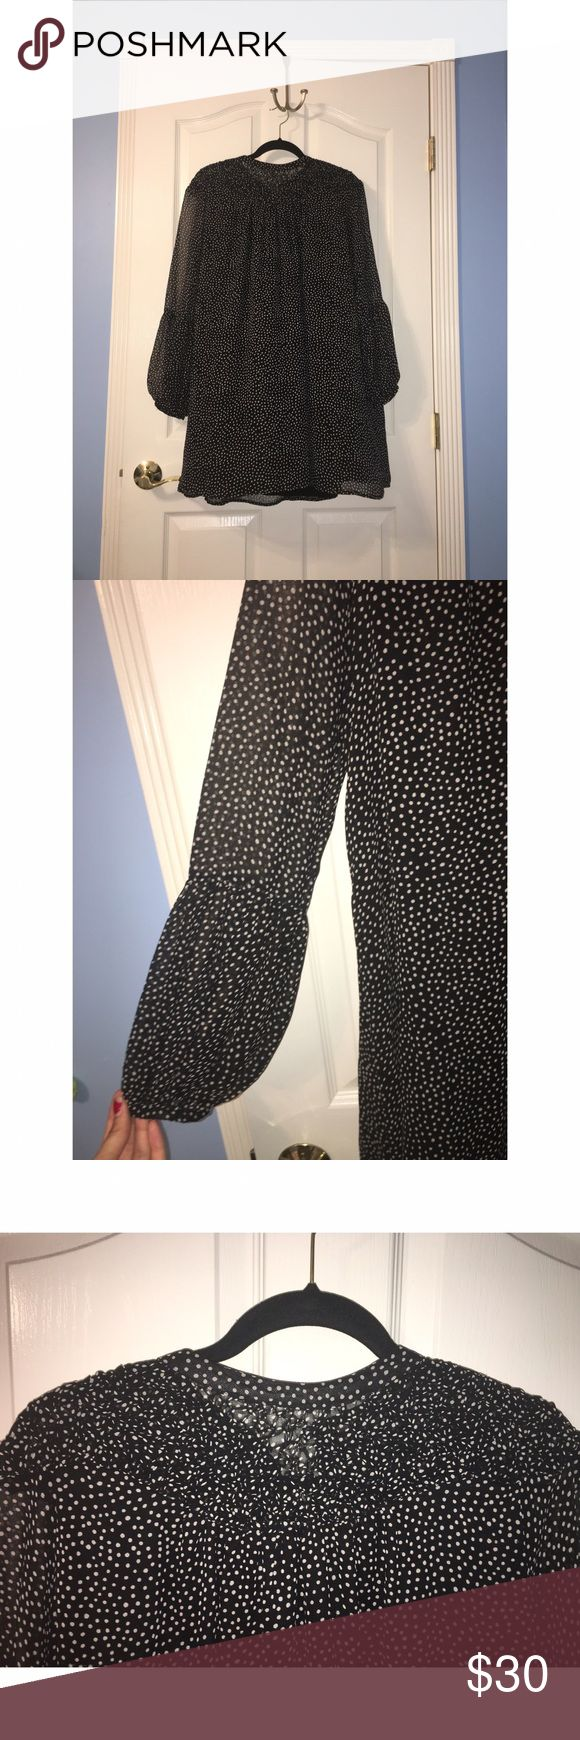 NWOT Zara Polka Dot Long Sleeved Dress 💕 this is a brand new never been used Dress from Zara. The tags are not attached. Zero imperfections 💕 Zara Dresses Long Sleeve